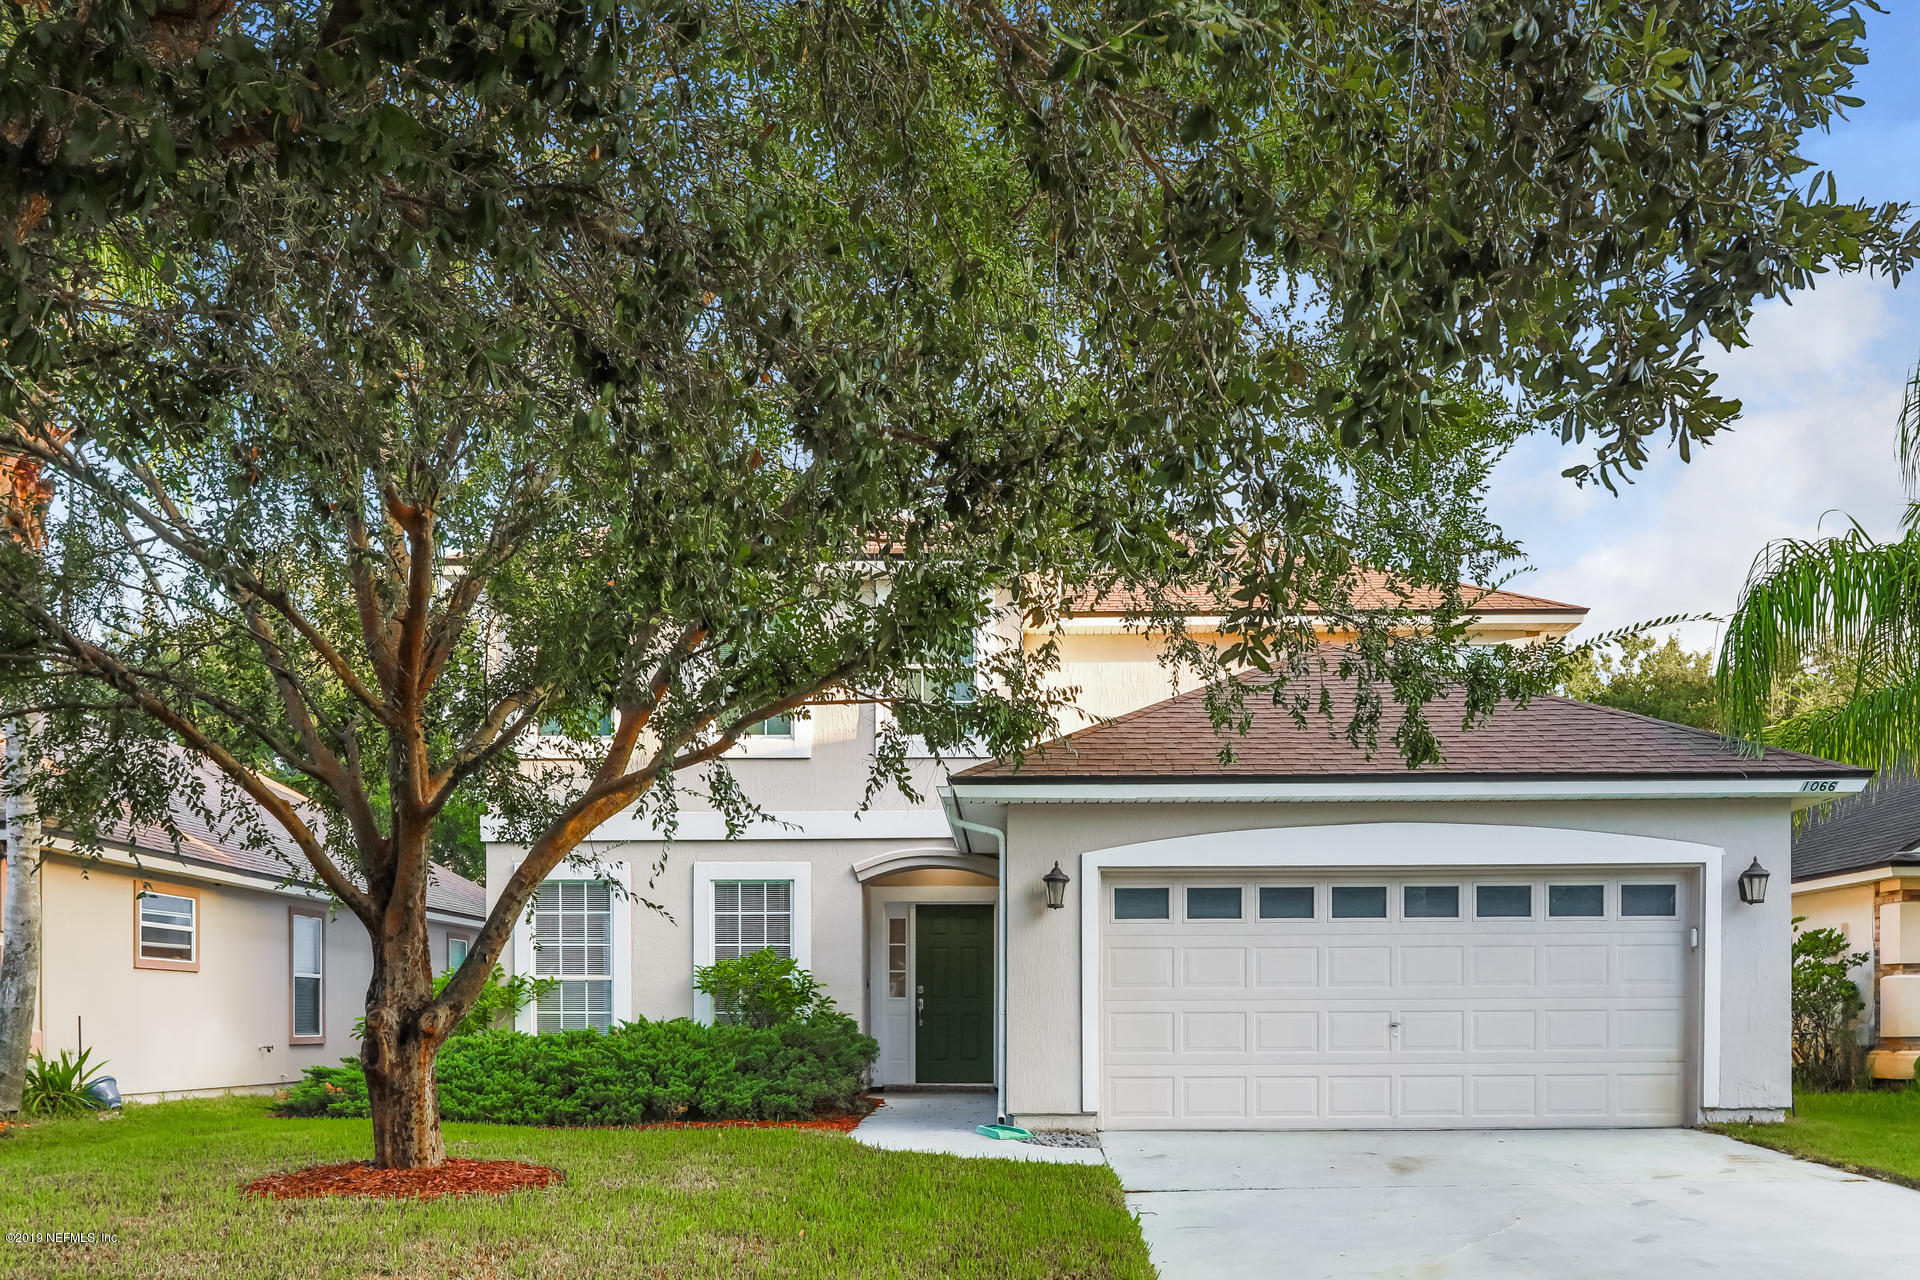 1066 THREE FORKS, ST AUGUSTINE, FLORIDA 32092, 5 Bedrooms Bedrooms, ,3 BathroomsBathrooms,Residential - single family,For sale,THREE FORKS,1018873